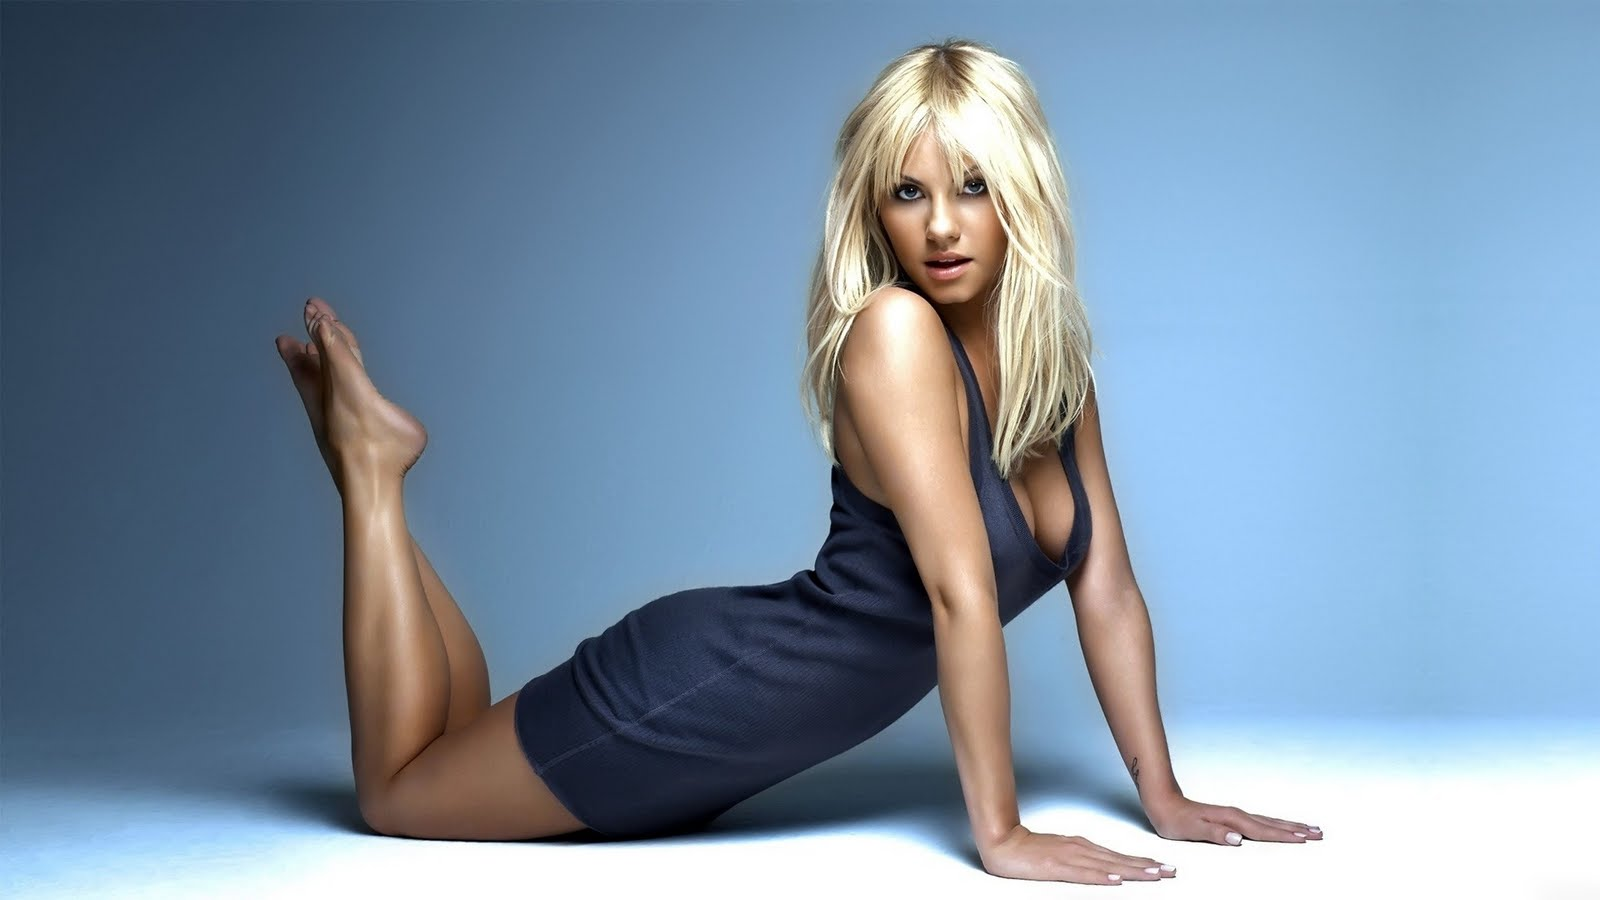 Best Quality HD Wallpapers: Elisha Cuthbert - Super Sexy Wallpapers